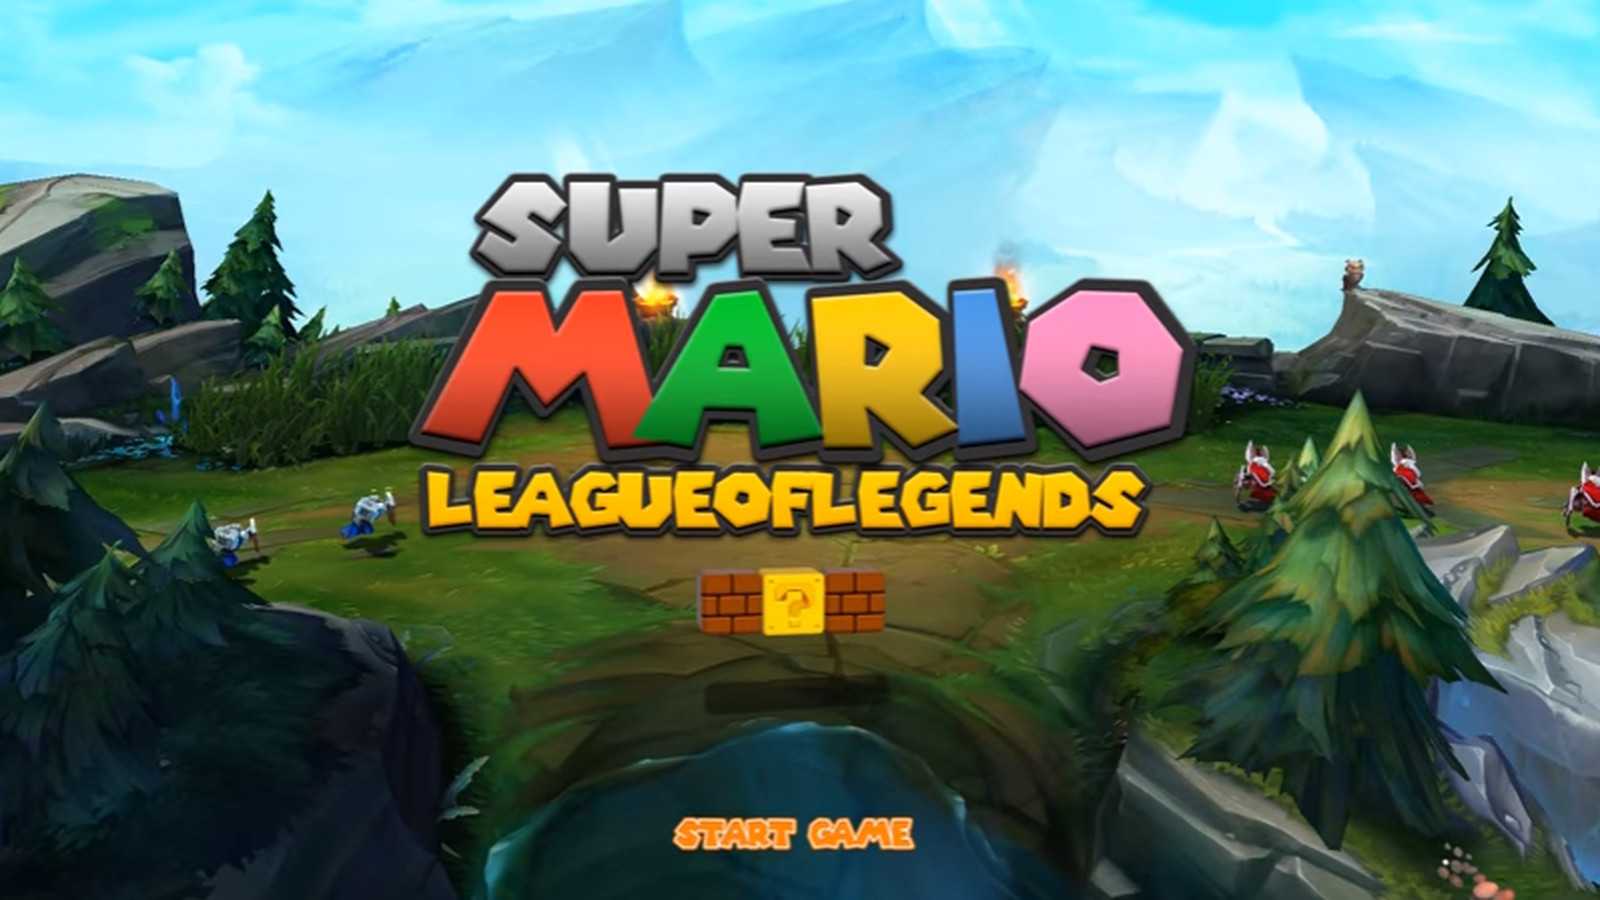 This Super Mario/ League of Legends mashup is so good